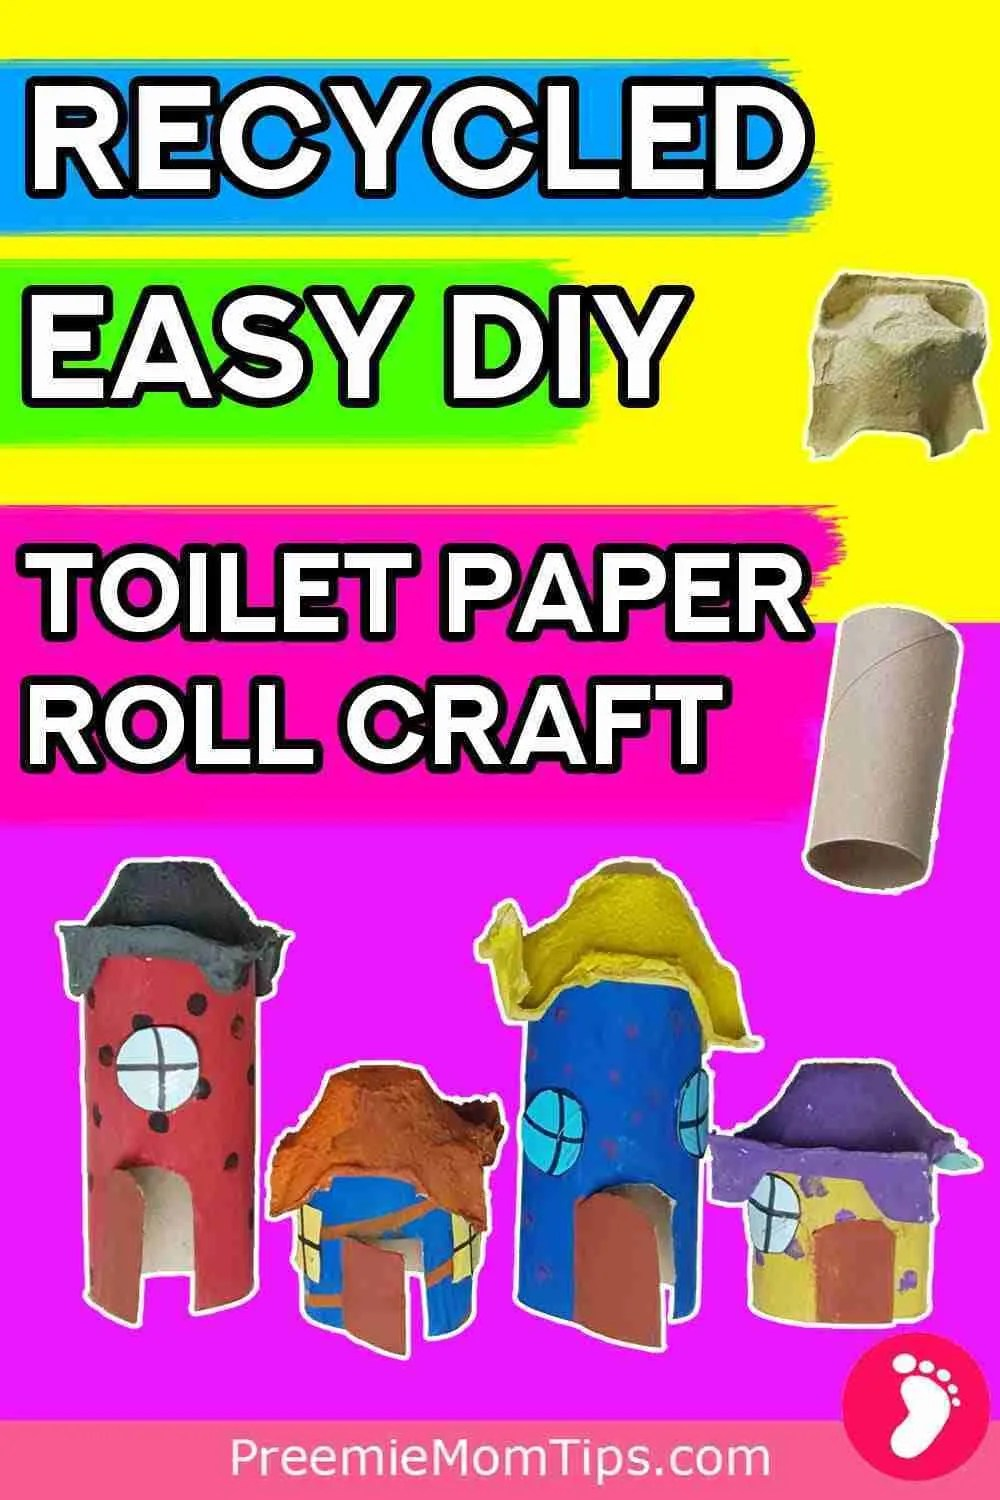 How to make your own easy recycled toilet paper roll craft house to play with!